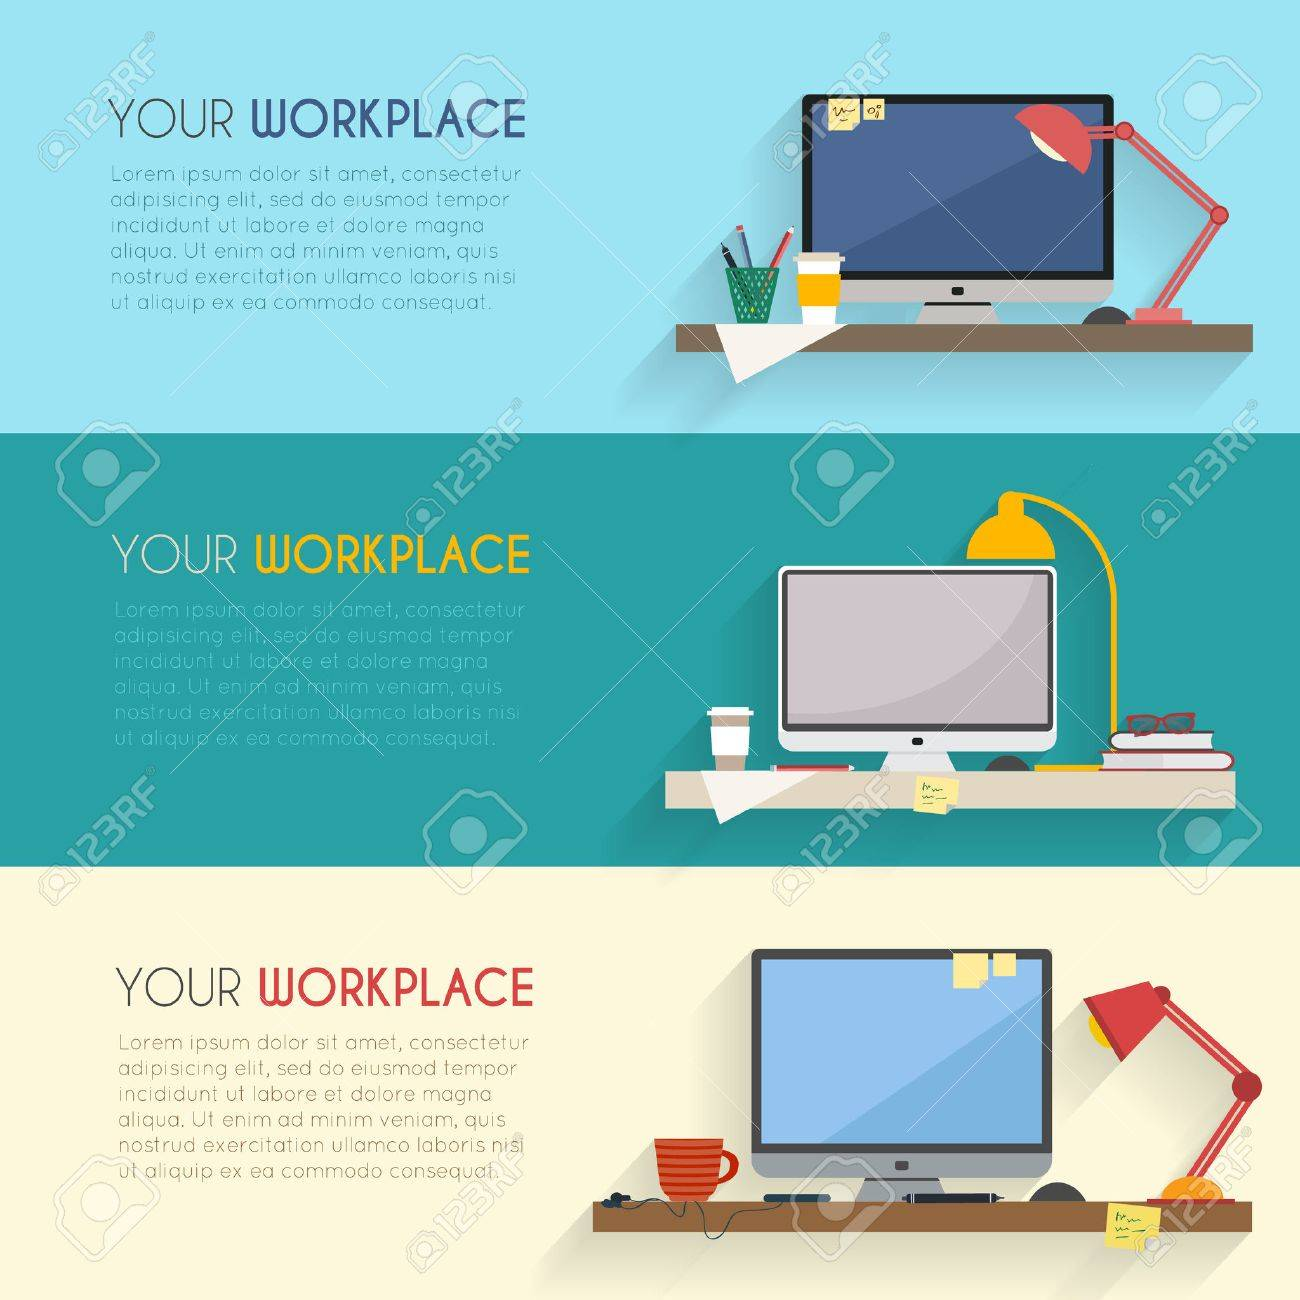 Graphic Design Desk Stock Vector Illustration And Royalty   Graphic Design  Work From Home Freelance